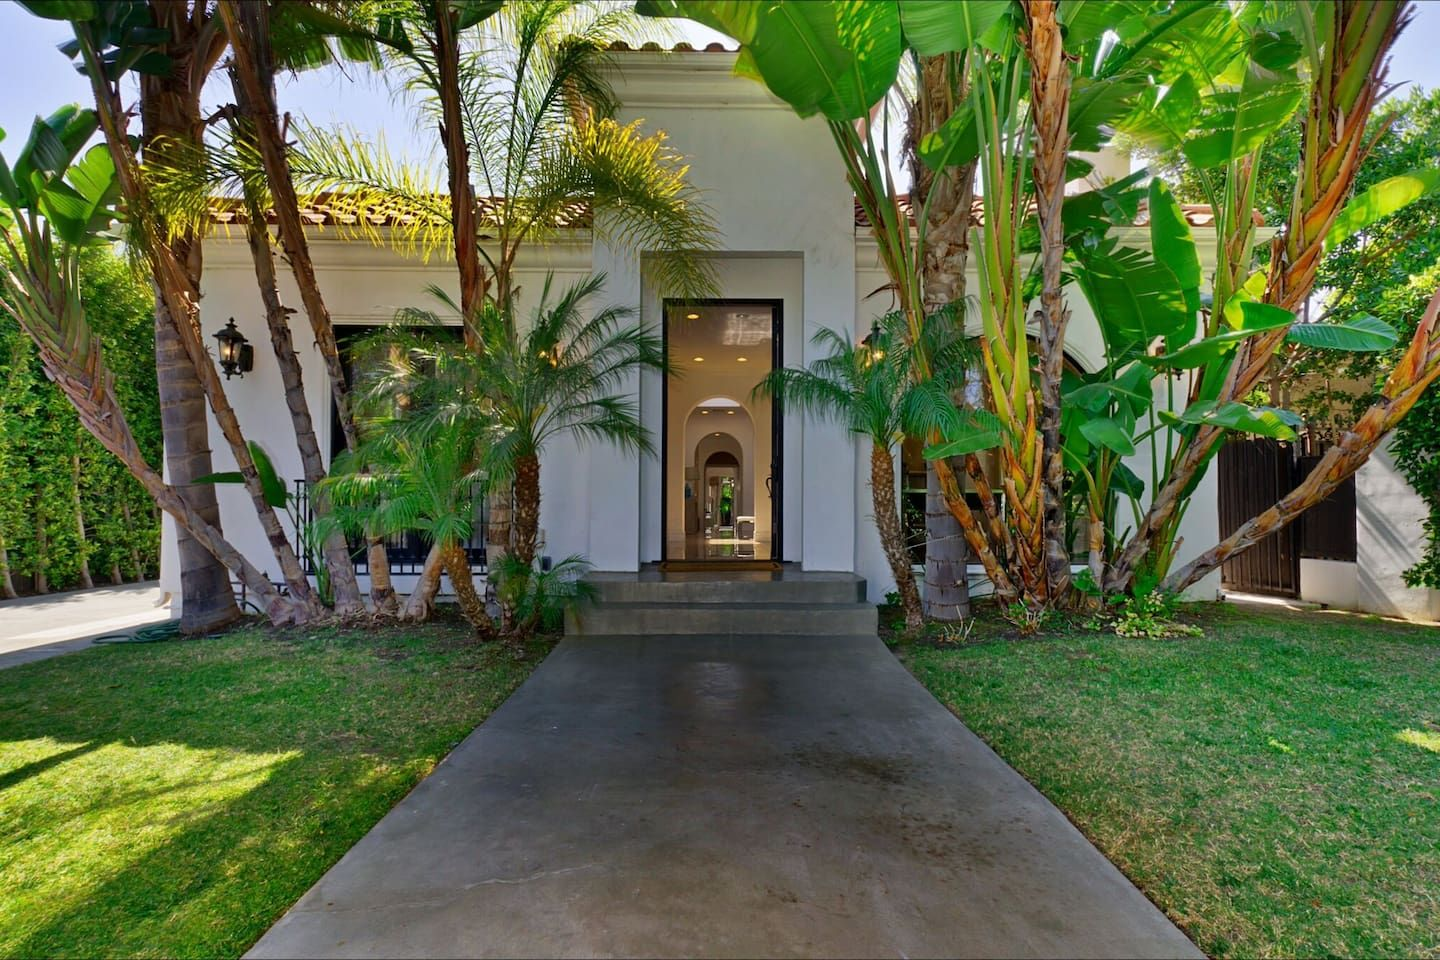 Villa in heart of West Hollywood - Houses for Rent in Los